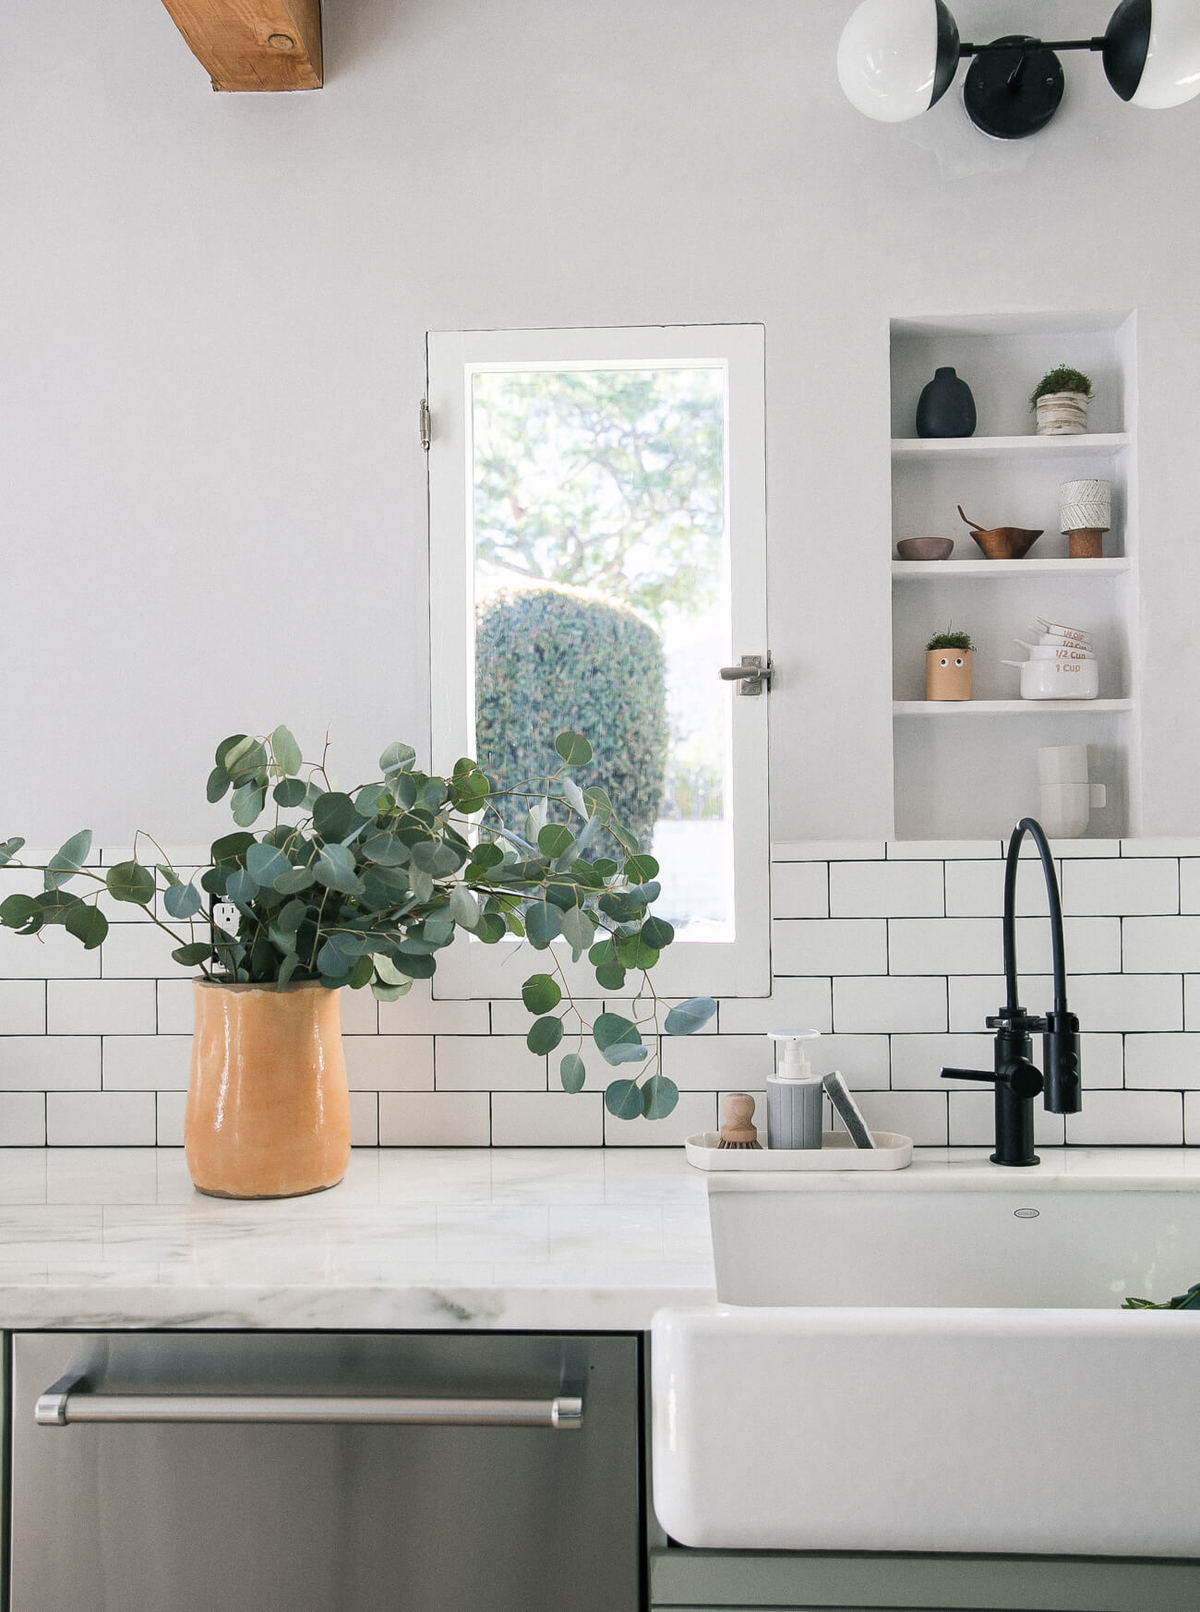 A Cozy Kitchen Renovation: Tips on Working with a Contractor for the ...